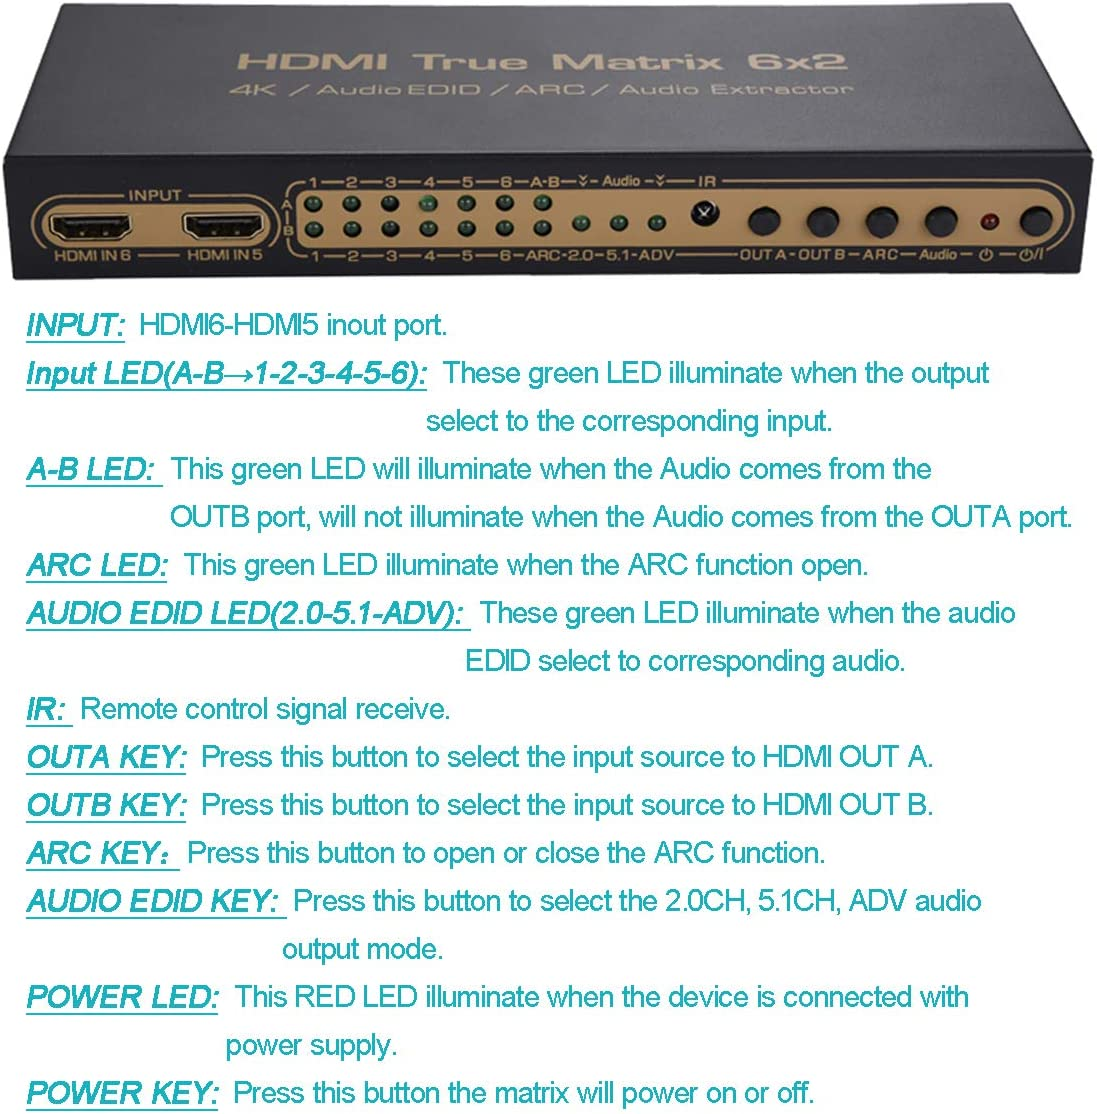 Luiizans Selector Switch Boxes 6X2 HDMI Matrix 6 in 2 Out Audio Extractor Support ARC Splitter with SPDIF Stereo Audio Output Switch 6 Signal Split on 2 HDTV